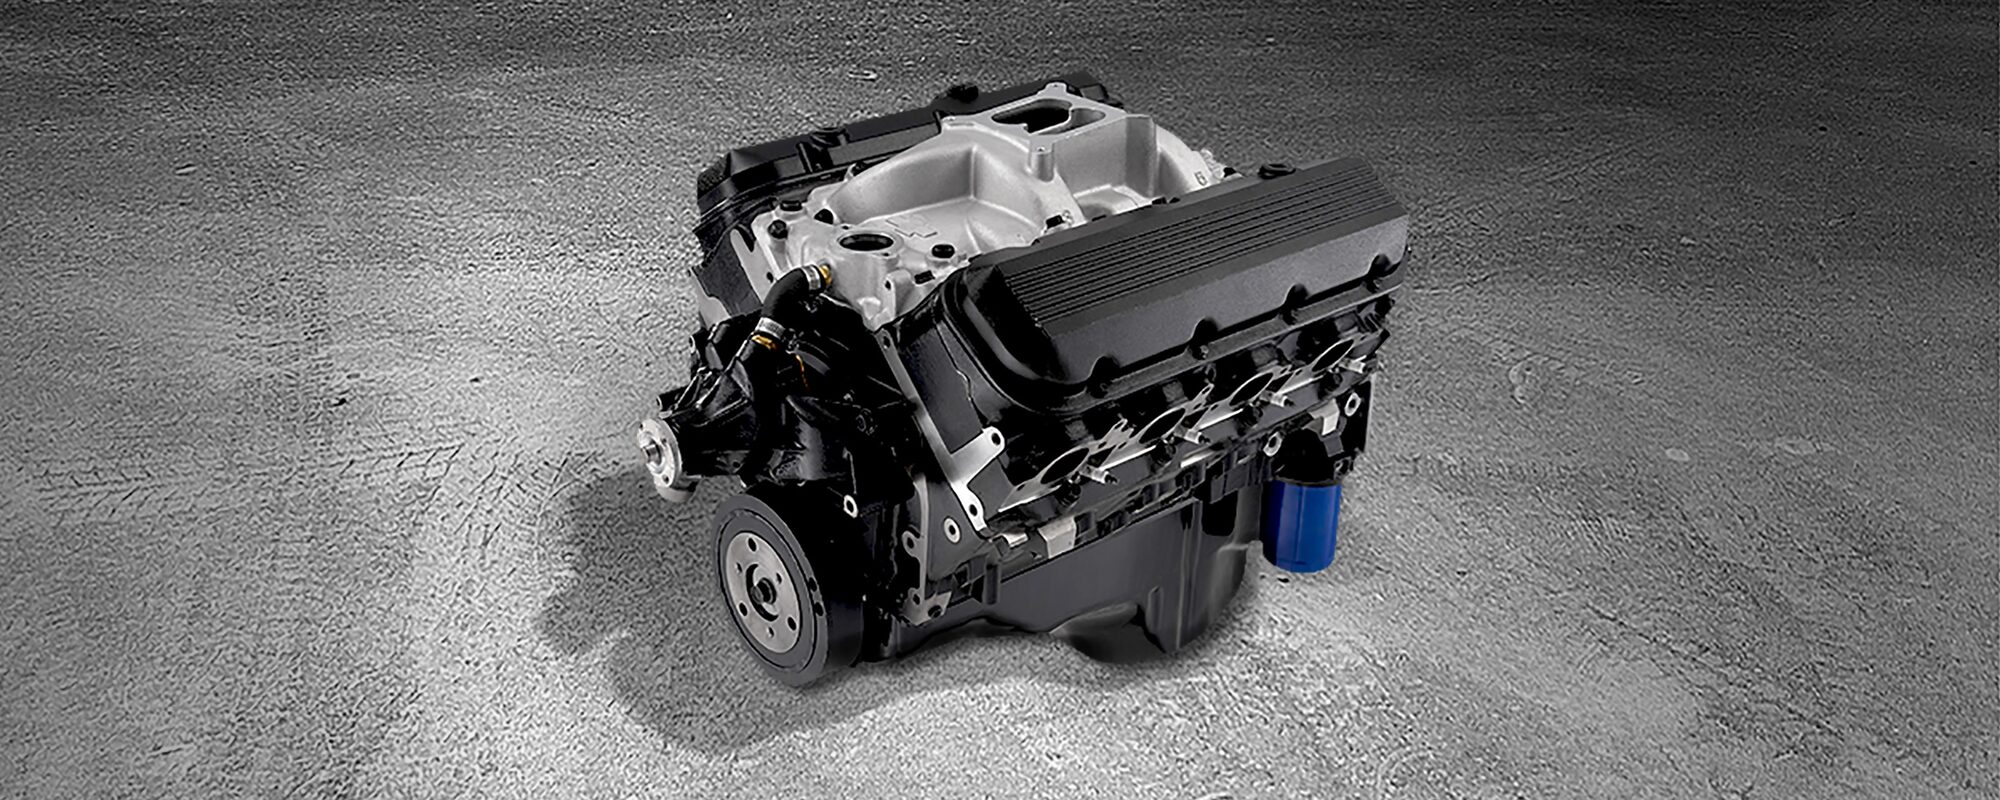 502 ho big block crate engine chevrolet performance 2 4 twin cam engine and trans bolts [ 2500 x 1000 Pixel ]